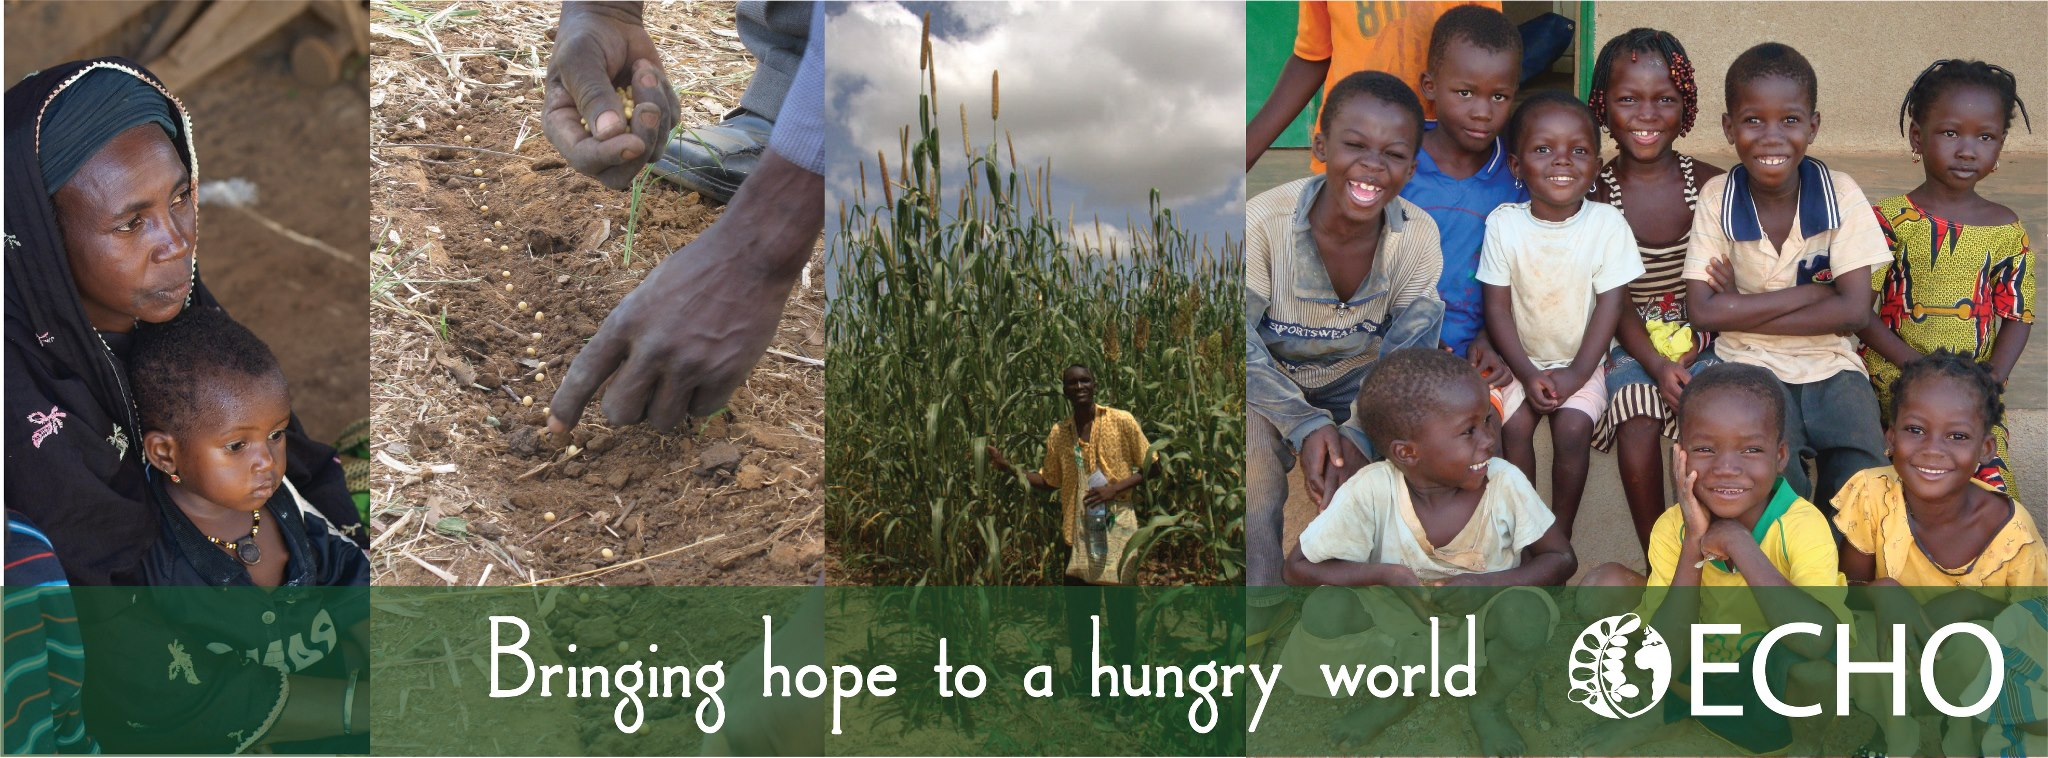 ECHO brings hope to a hungry world! Their mission is to follow Jesus by reducing hunger and improving lives worldwide through partnerships that equip people with agricultural resources and skills.